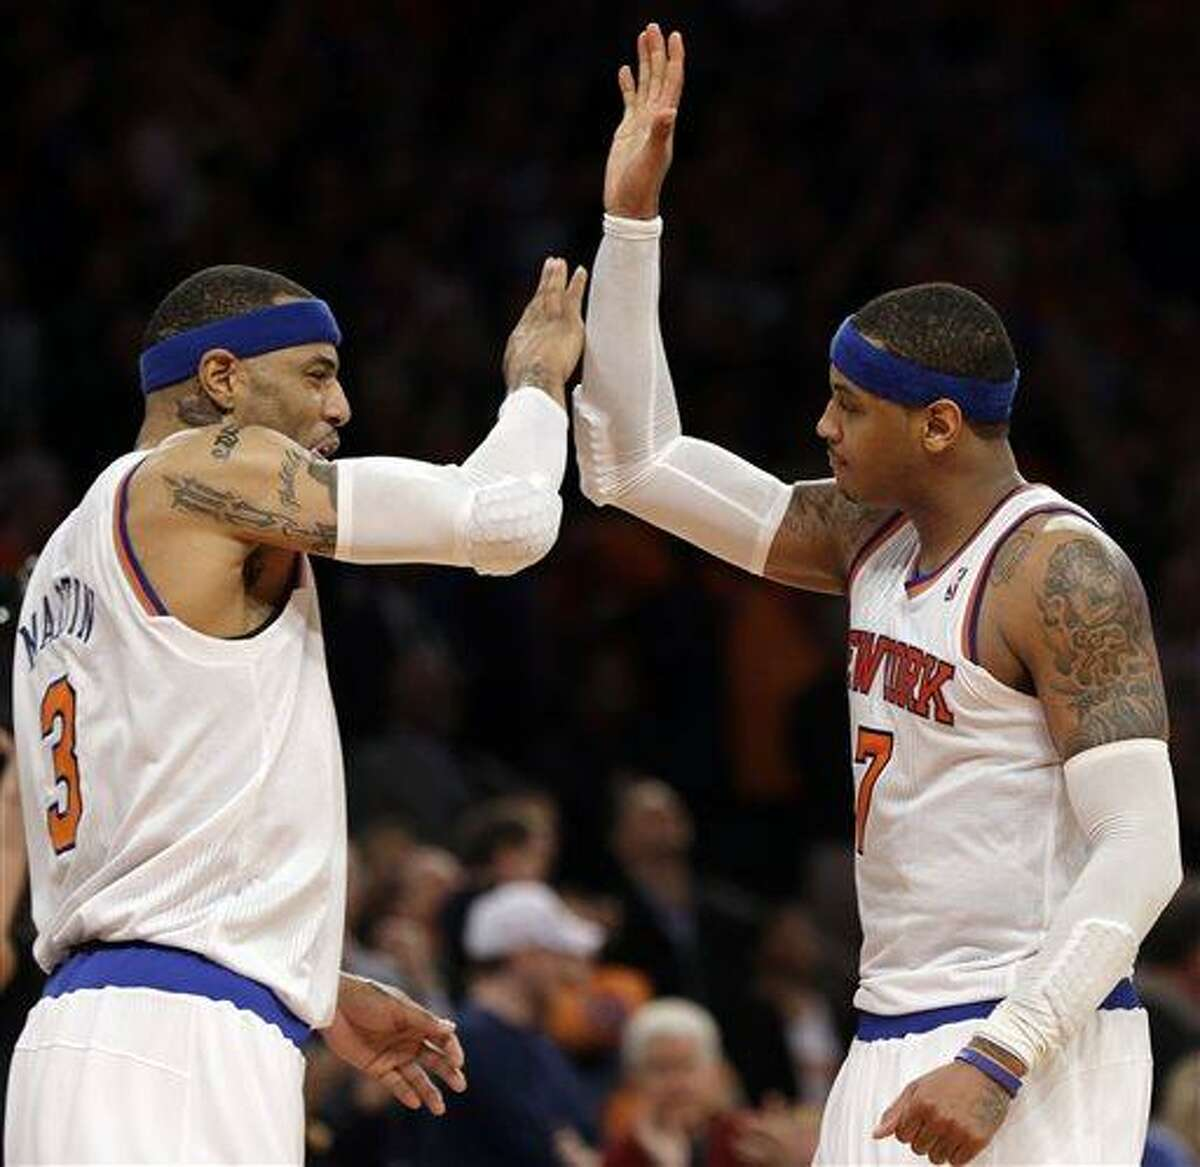 New York Knicks forward Kenyon Martin, left, and teammate Carmelo Anthony celebrate after the Knicks went ahead in the fourth quarter of Game 1 of the NBA basketball playoffs in New York, Saturday, April 20, 2013. (AP Photo/Kathy Willens)in New York, Saturday, April 20, 2013. The Knicks defeated Celtics 85-78. (AP Photo/Kathy Willens)